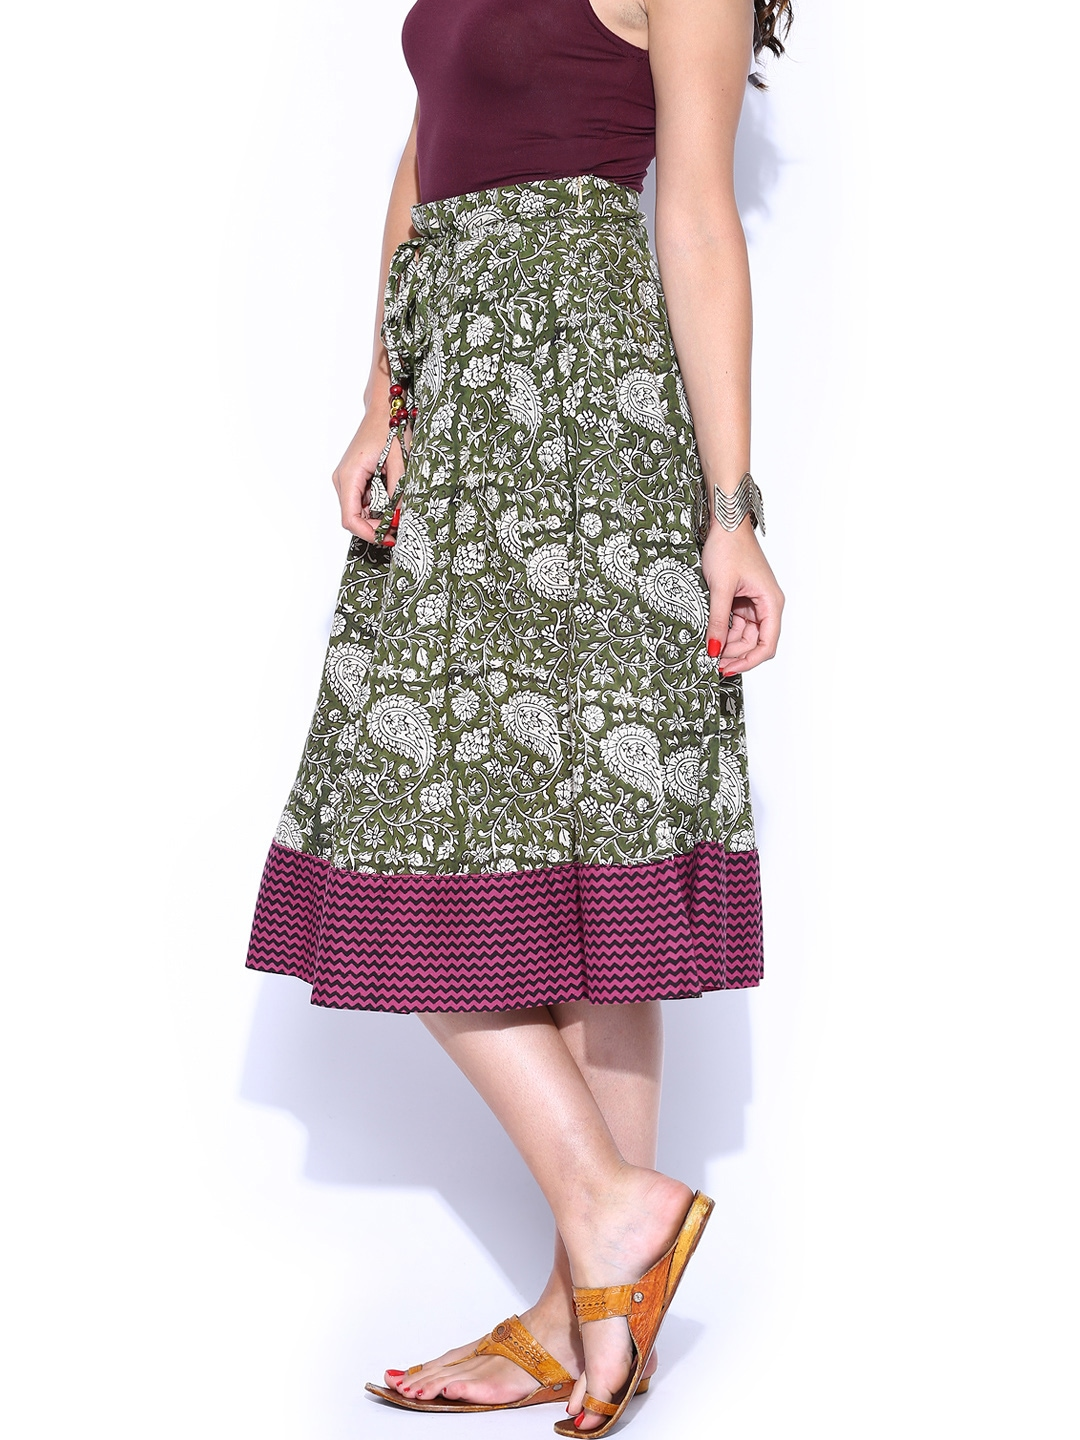 Find the latest and trendy styles of green midi skirt at ZAFUL. We are pleased you with the latest trends in high fashion green midi skirt.